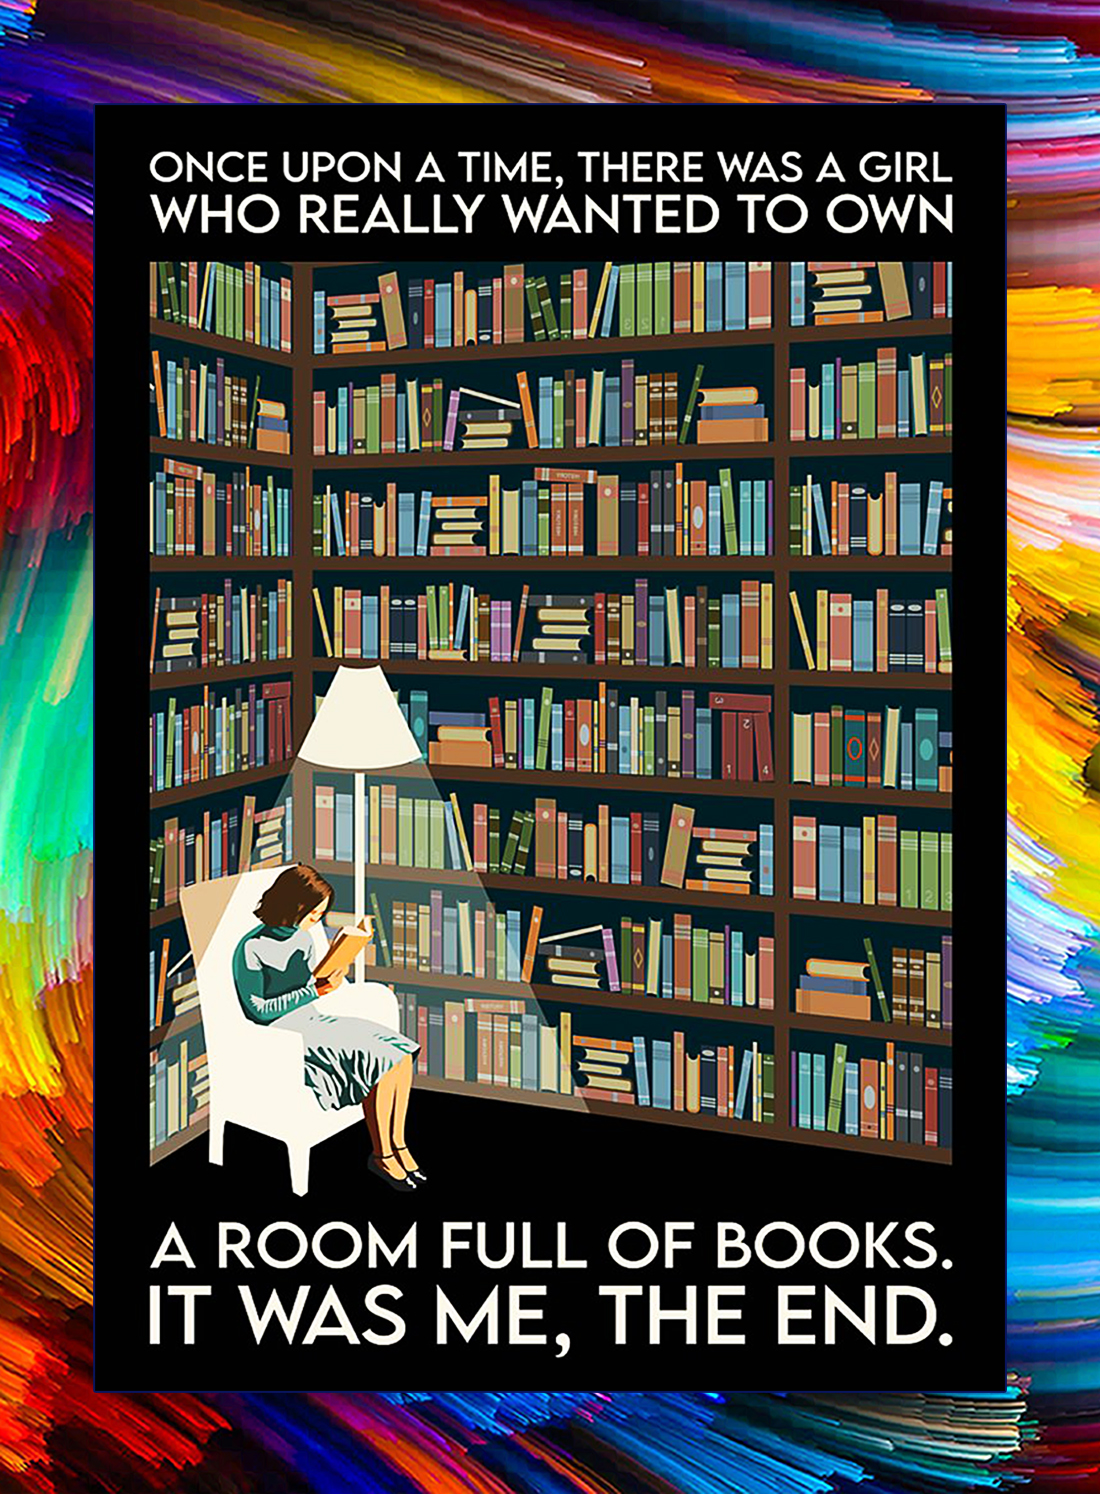 Once upon a time there was a girl who really wanted to own a room full of books poster - A4